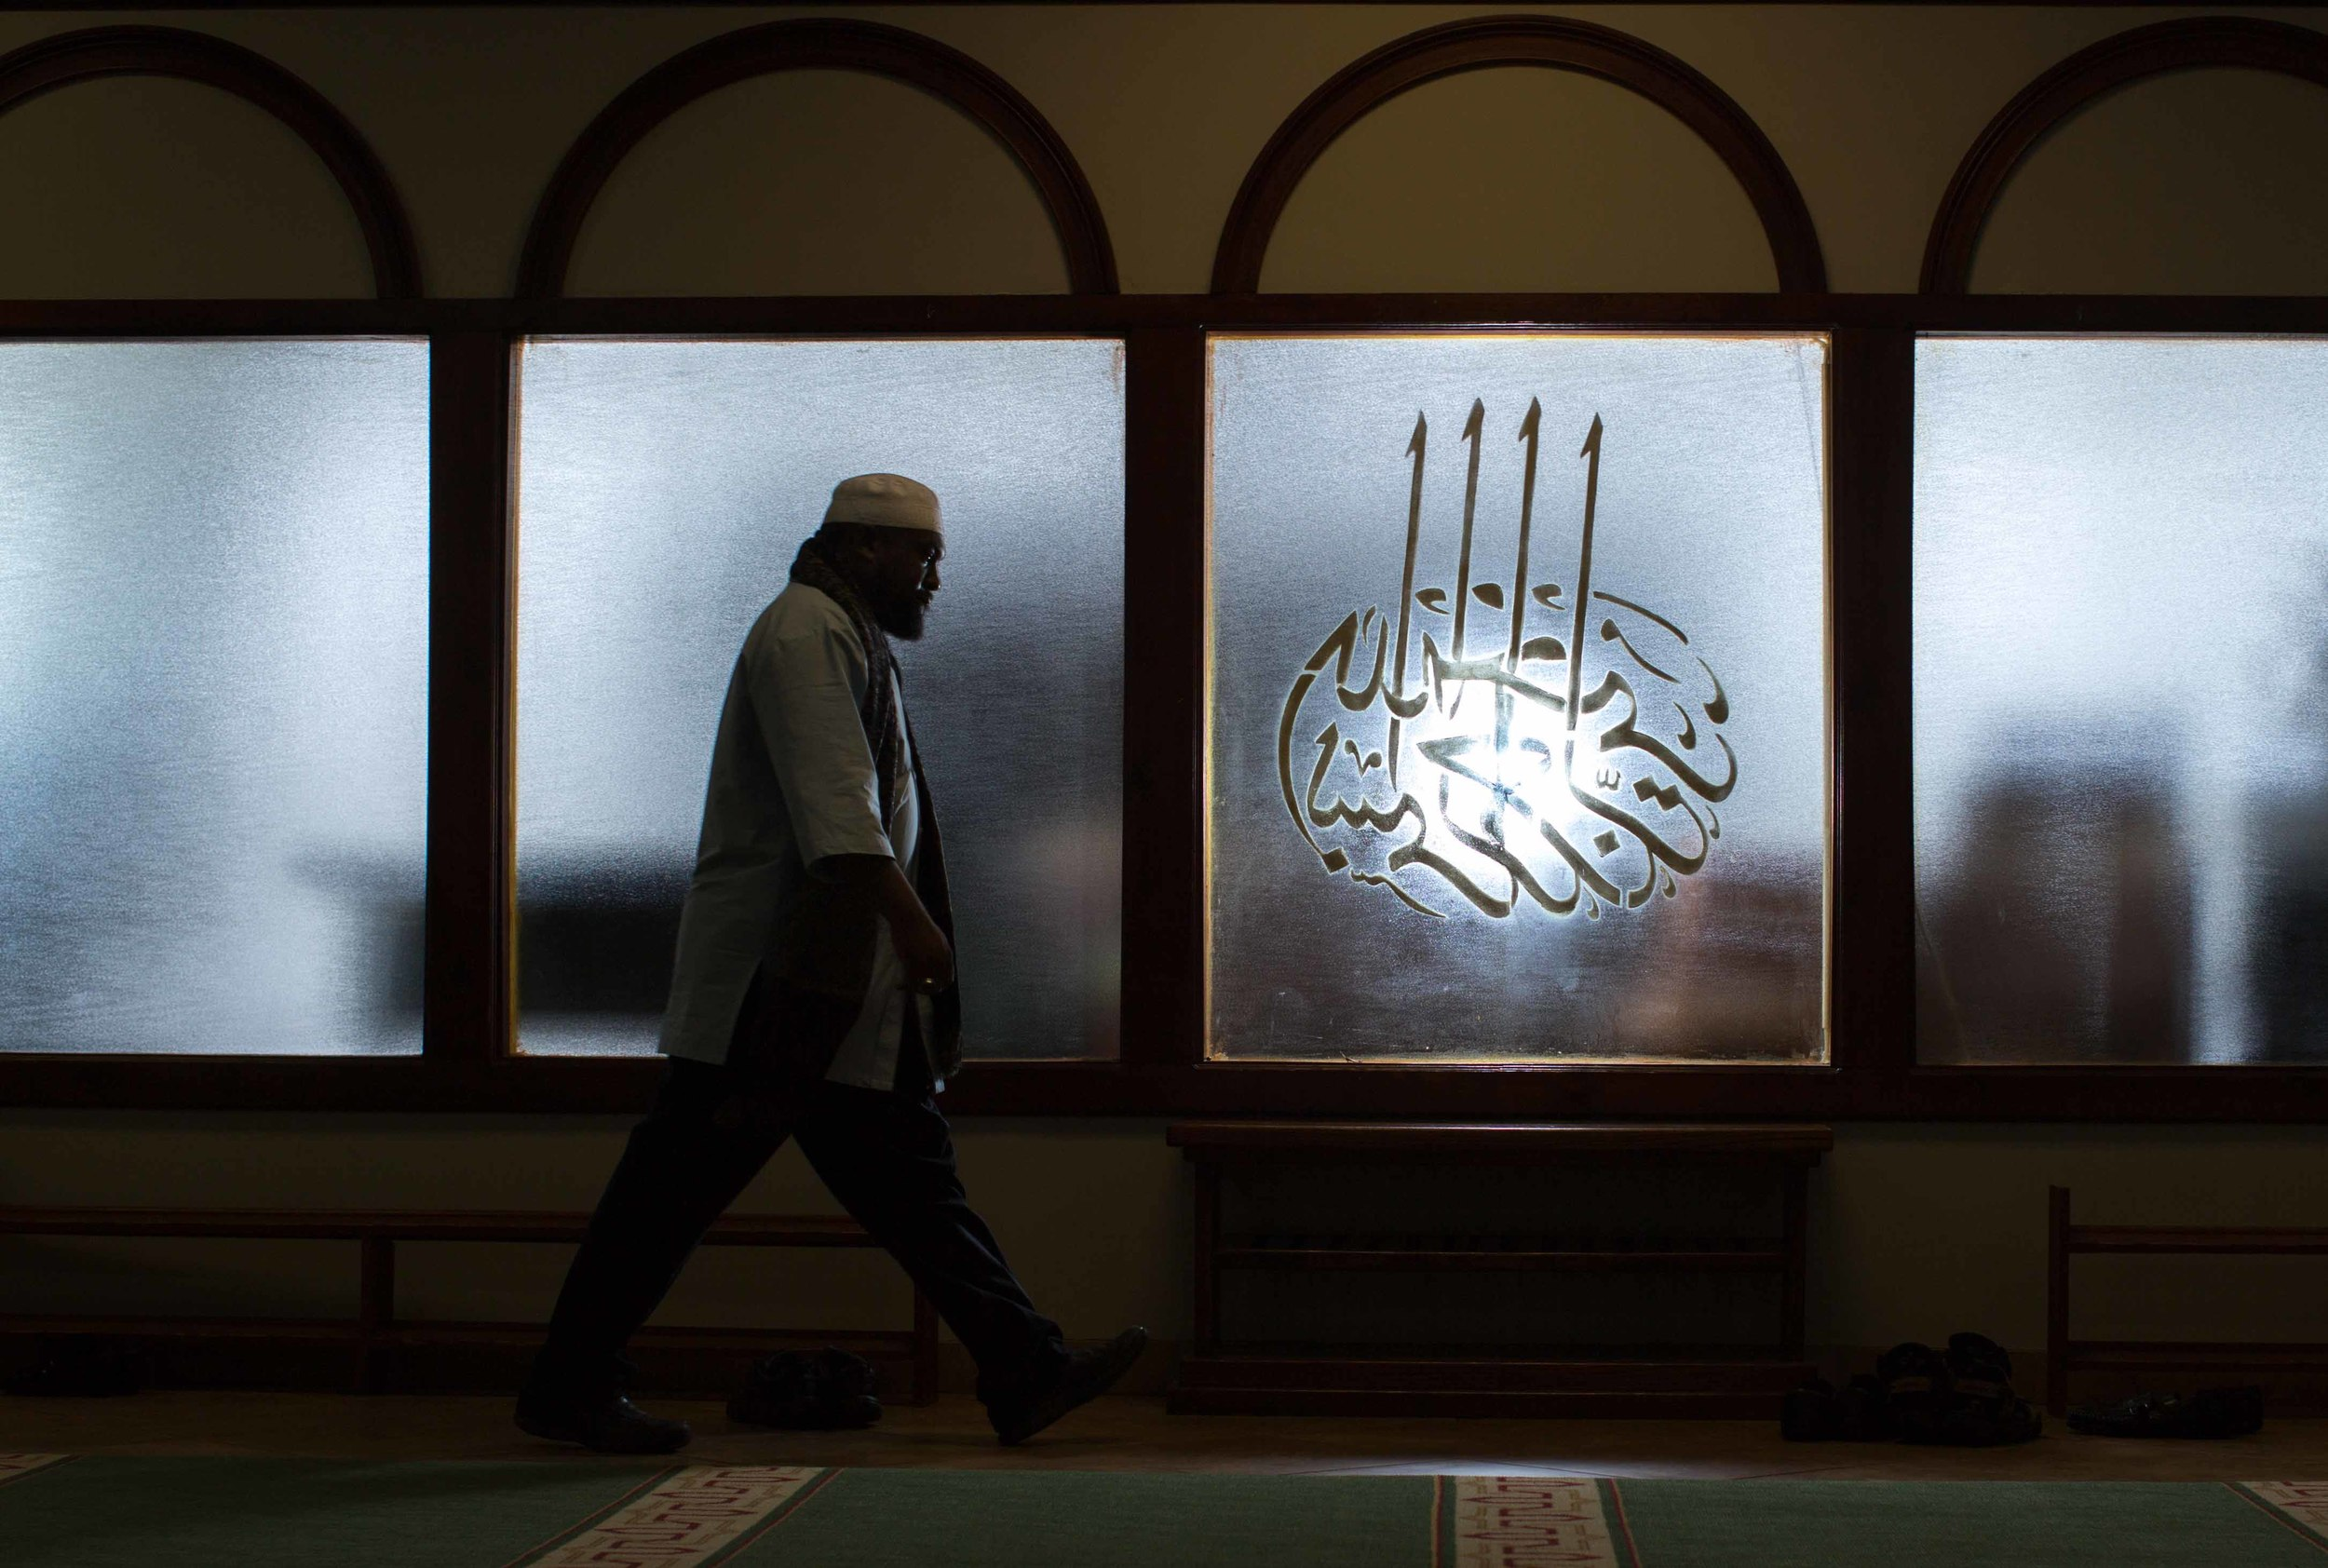 In this Sunday, Aug. 30, 2015 photo, Imam Suleimaan Hamed, the leader of the Atlanta Masjid of Al Islam mosque, walks through the mosque, in Atlanta. Members of the mosque gathered to celebrate a group of pilgrims who will make the annual hajj pilgrimage to the holy city of Mecca. (AP Photo/Branden Camp)